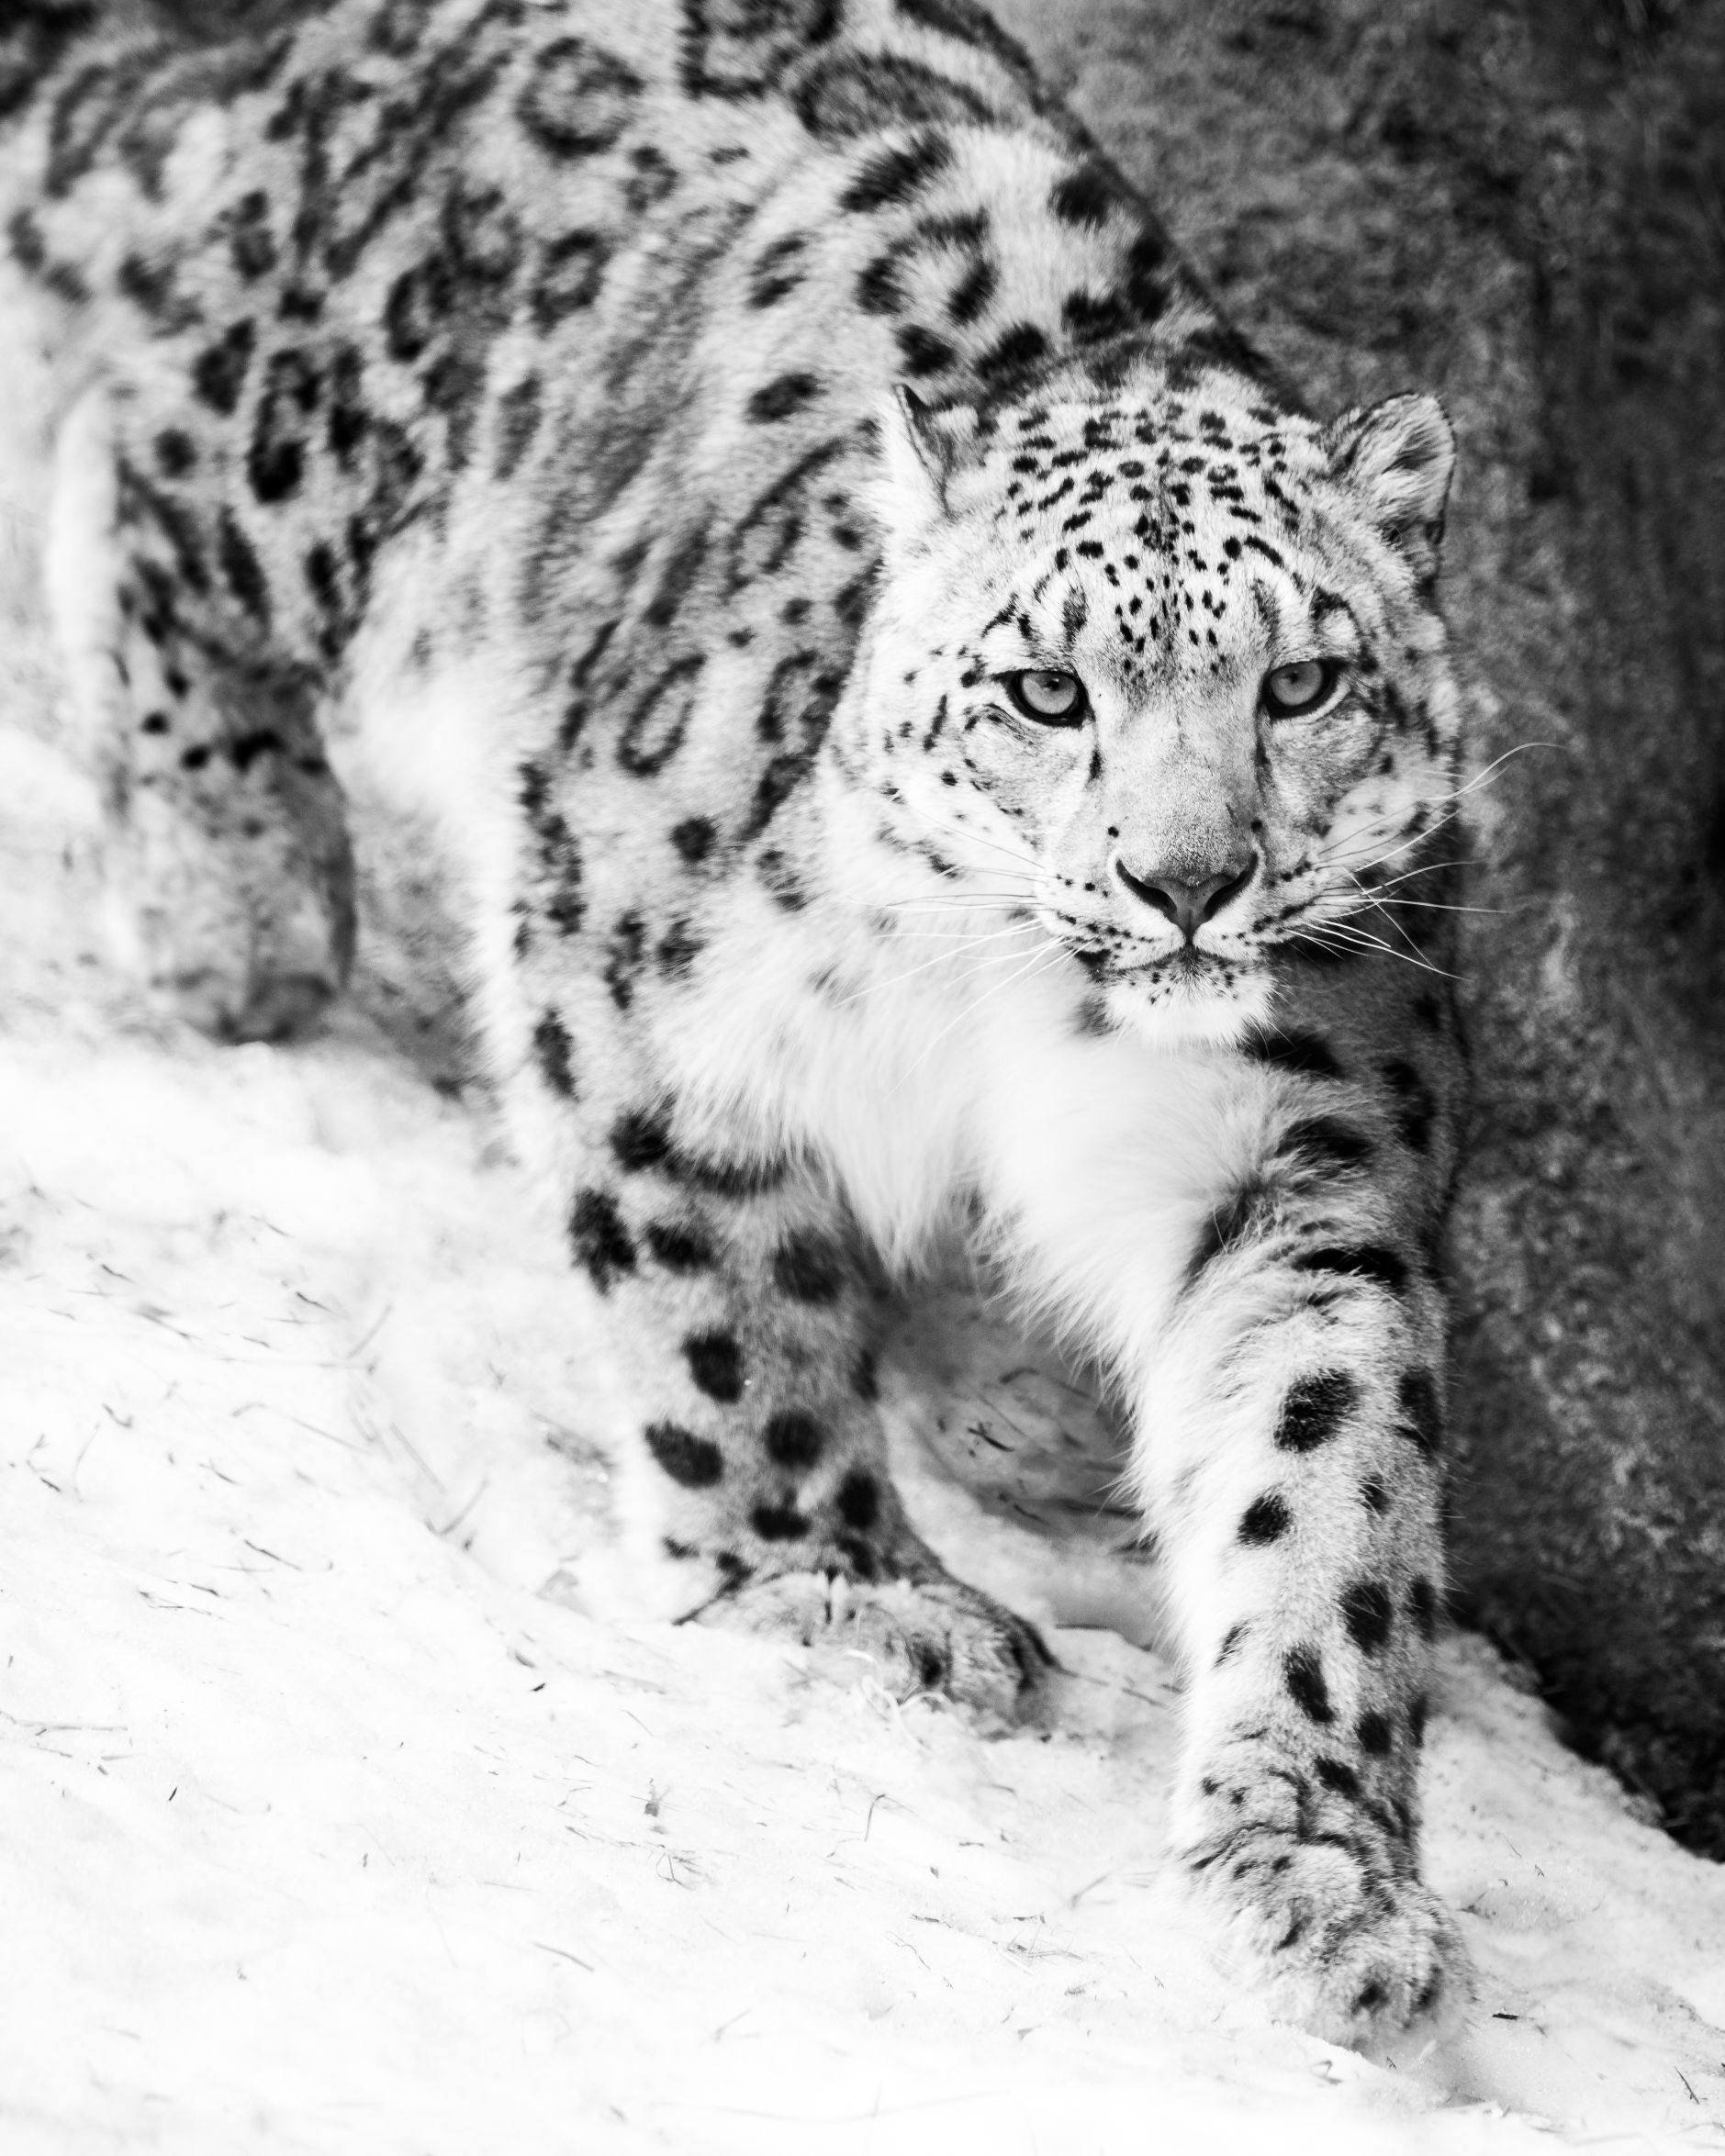 snow leopard creeping in snow